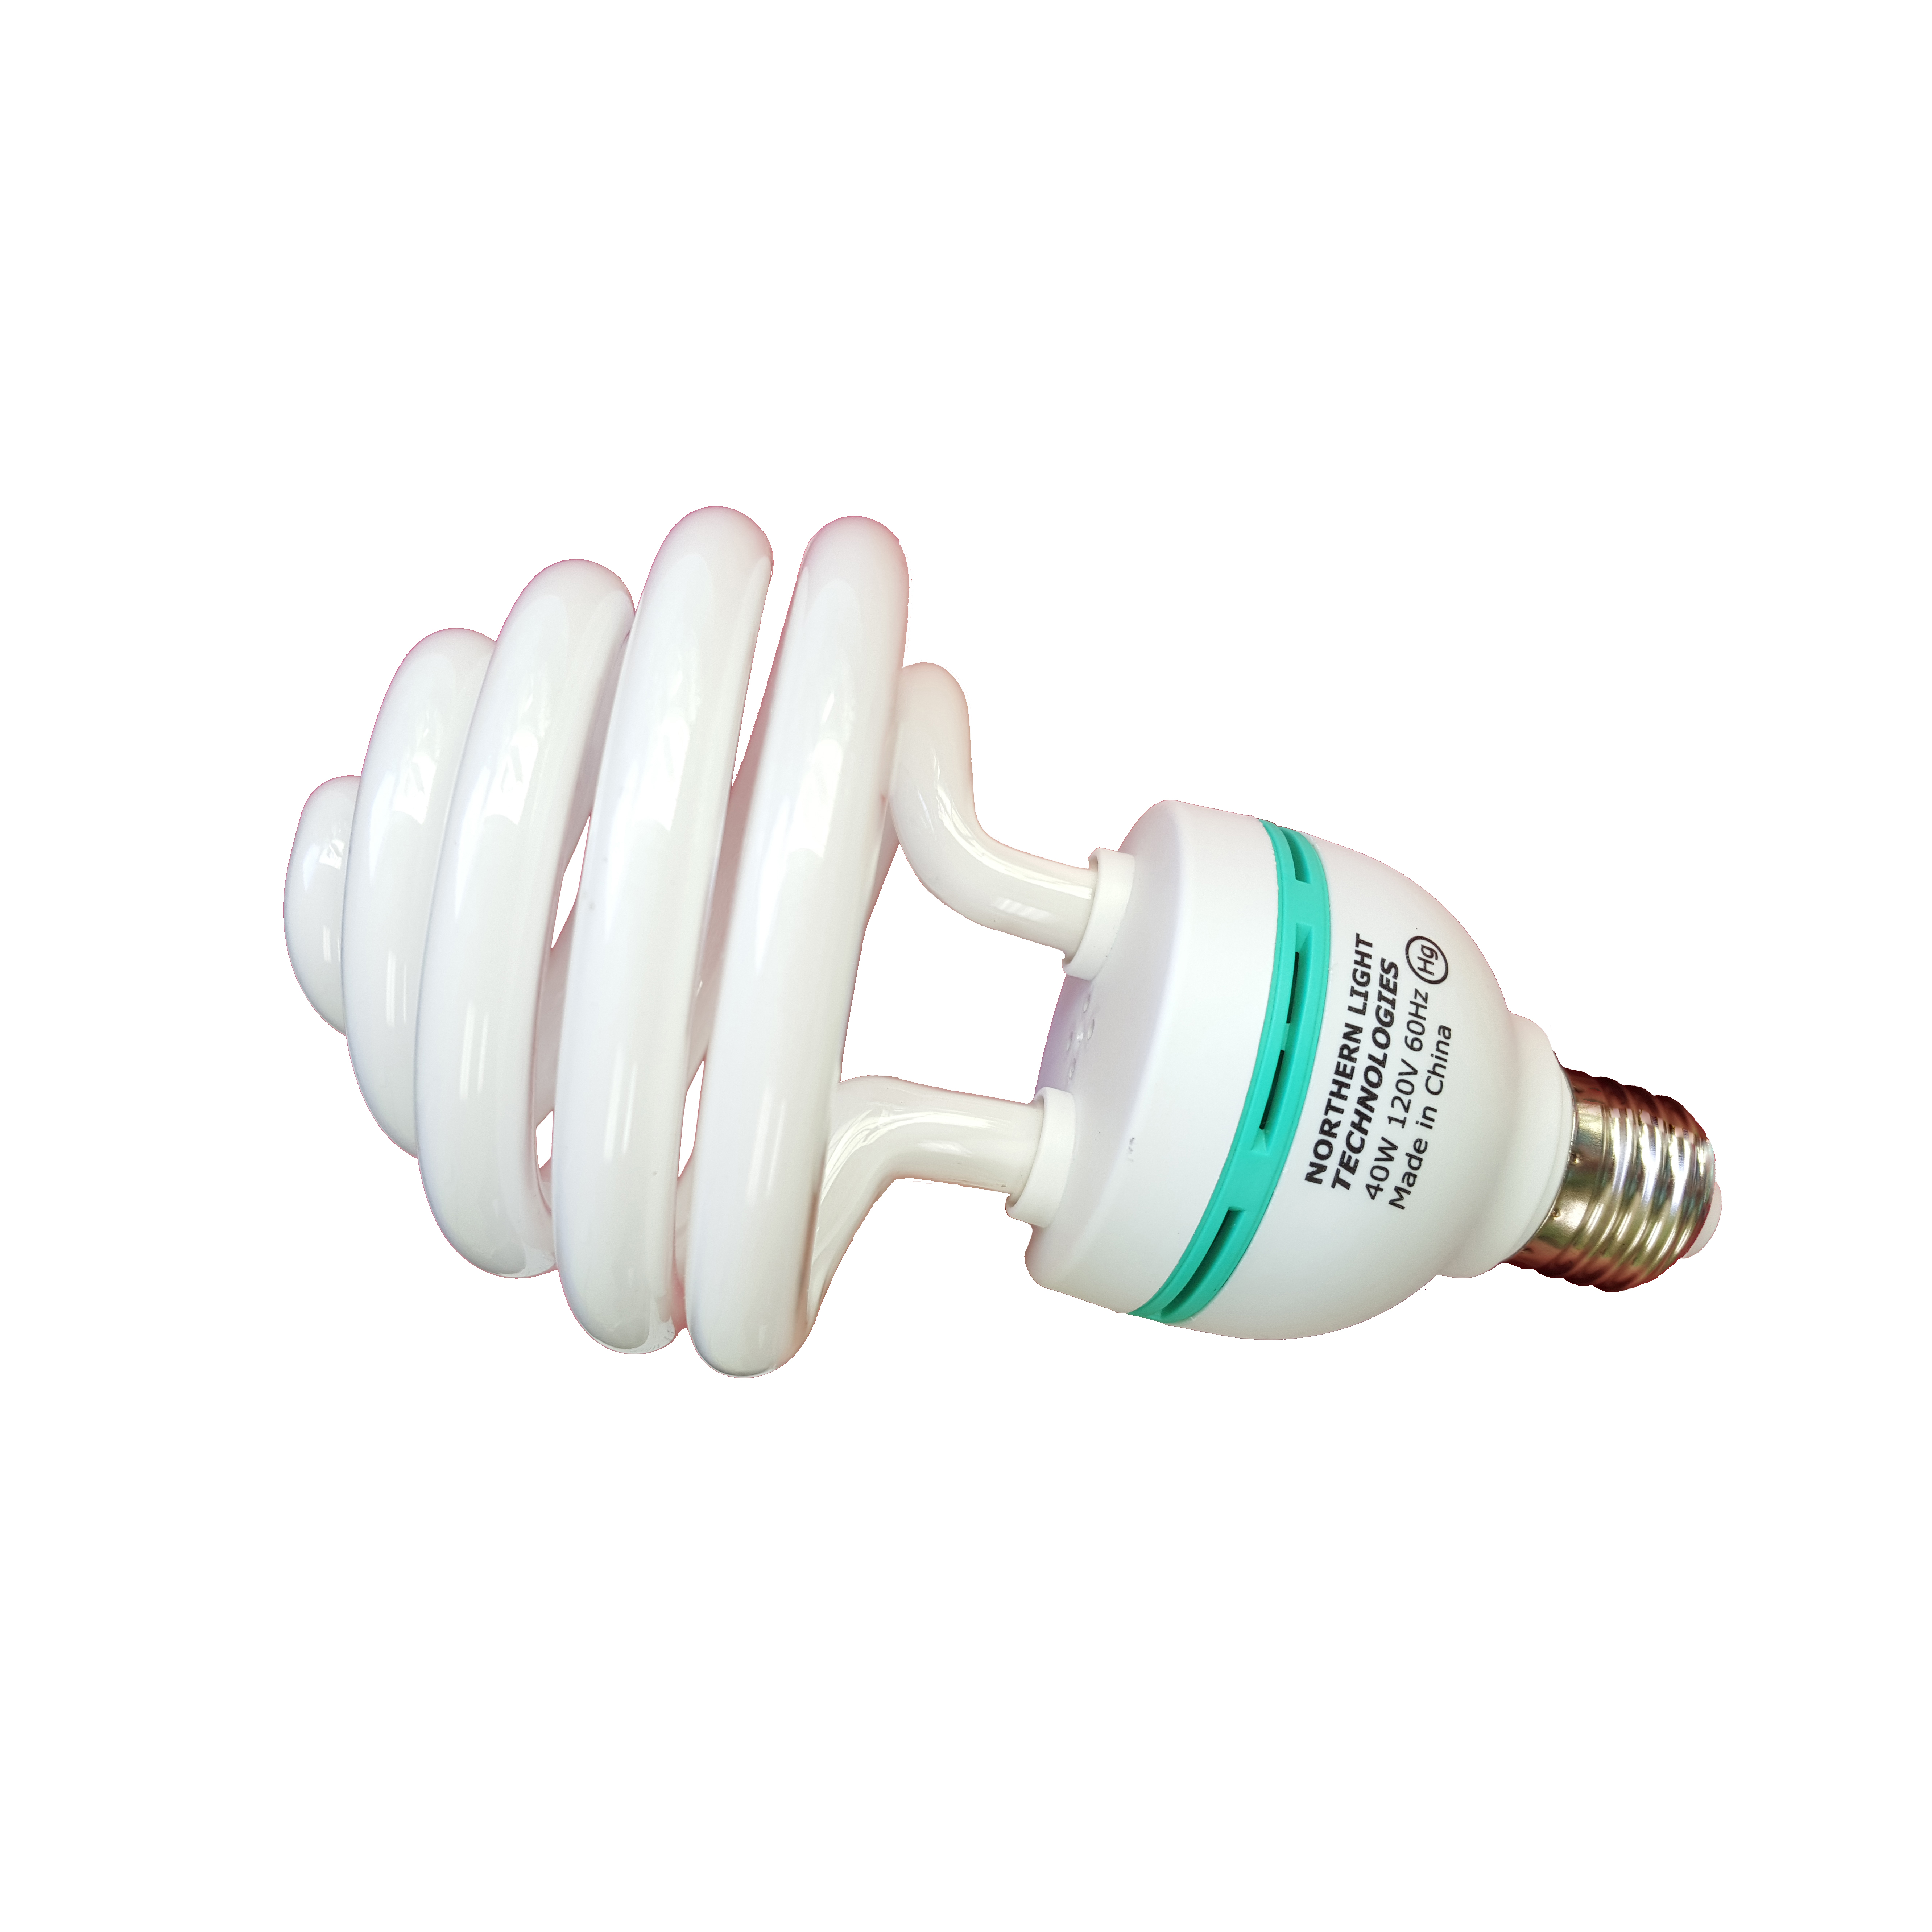 Replacement Bulb For Mini Luxor Northern Light